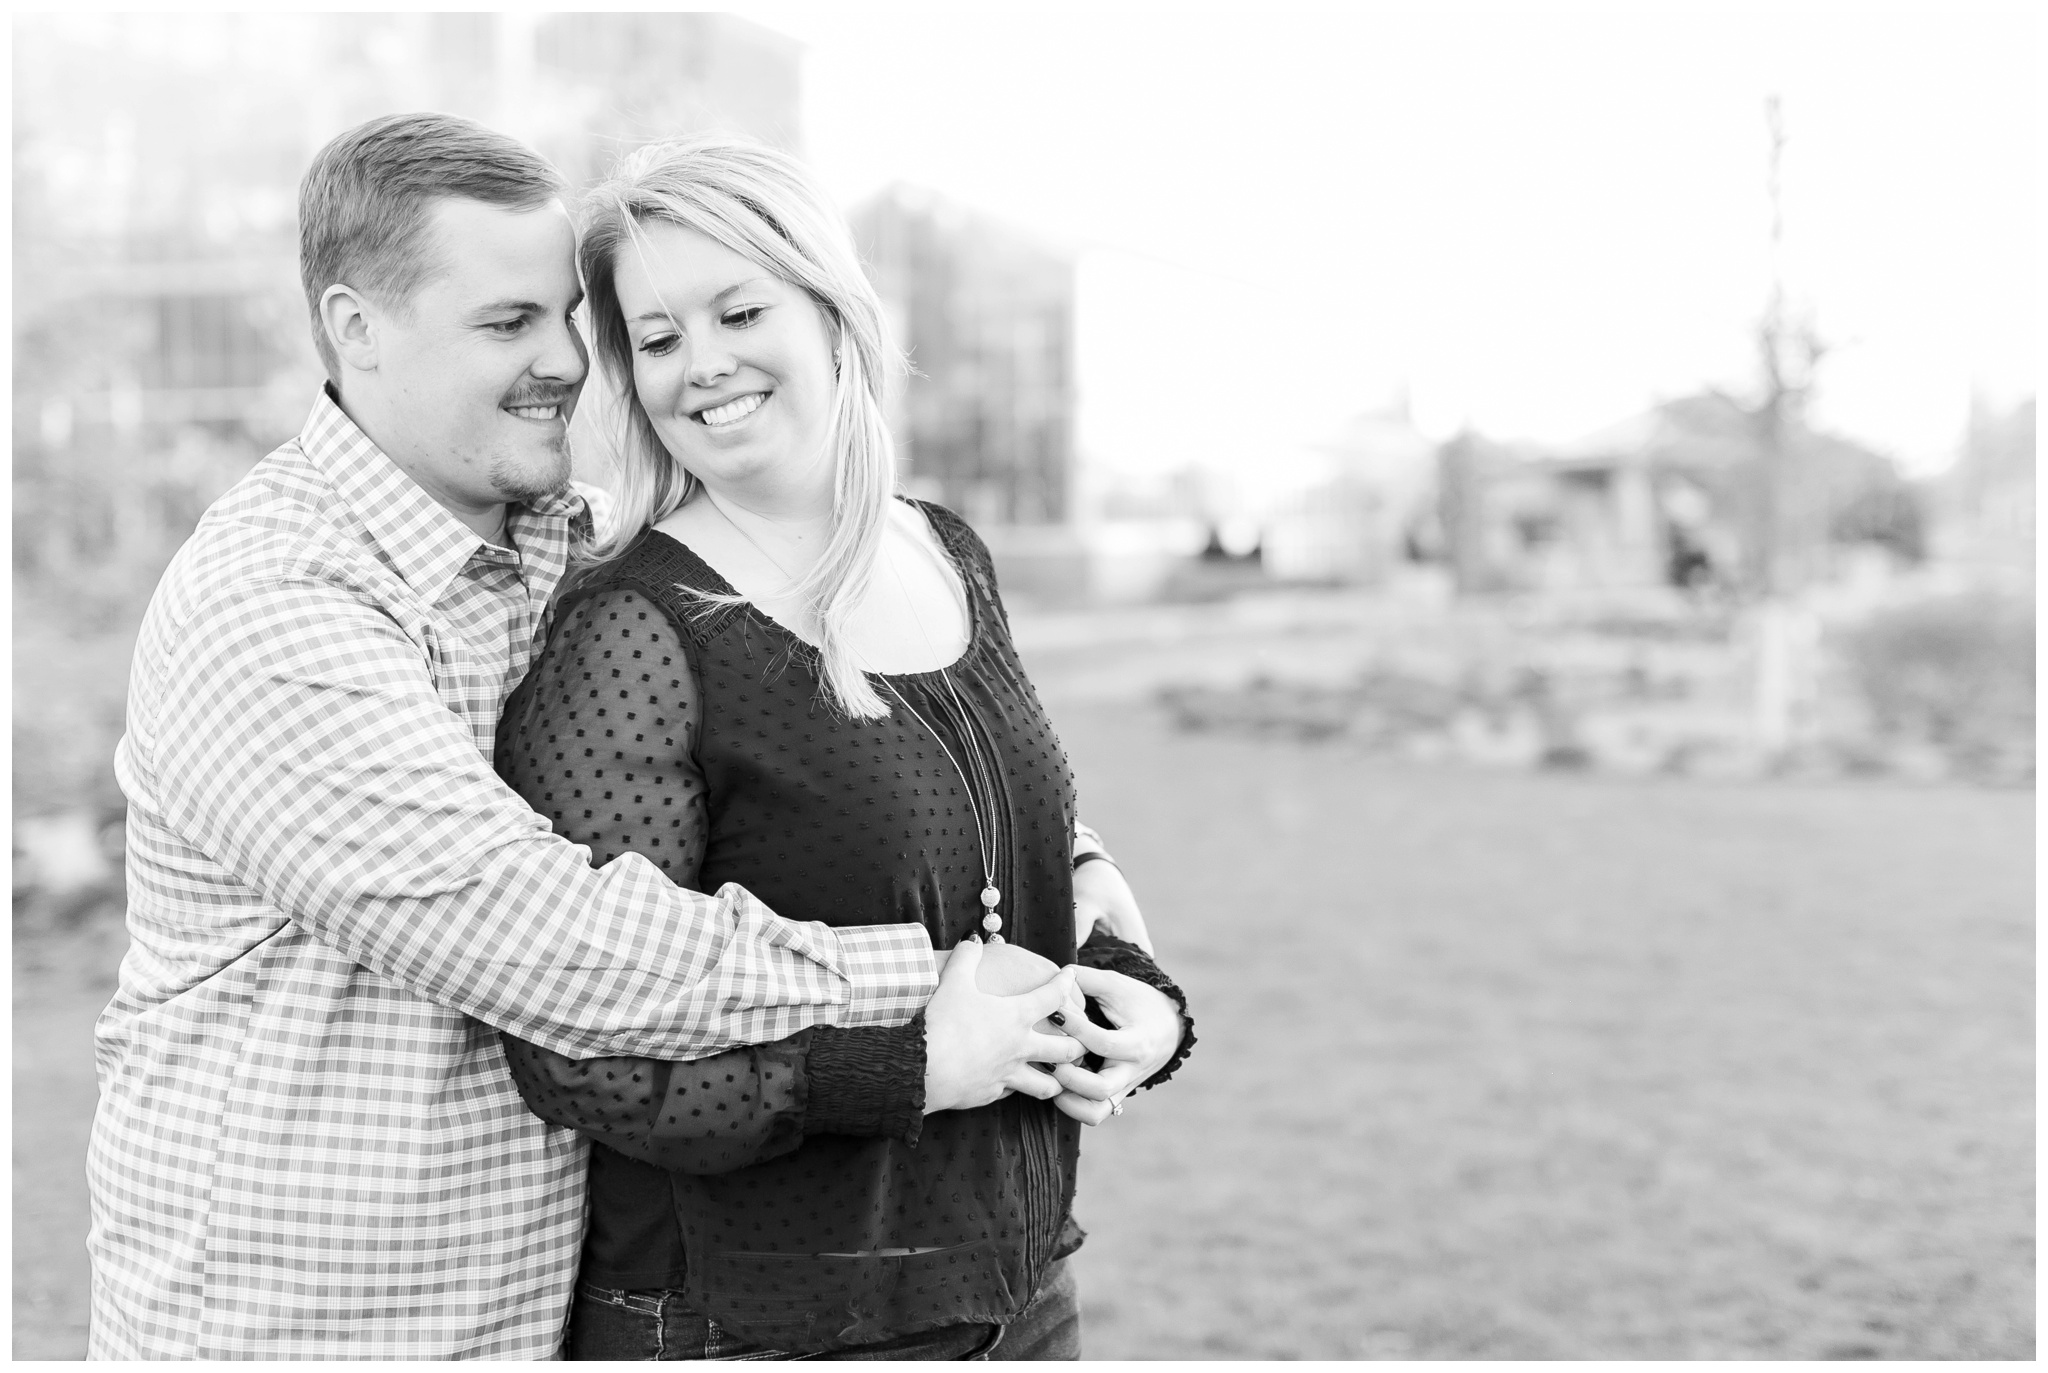 nicholas_conservatory_engagement_session_rockford_illinois_caynay_photo_3004.jpg